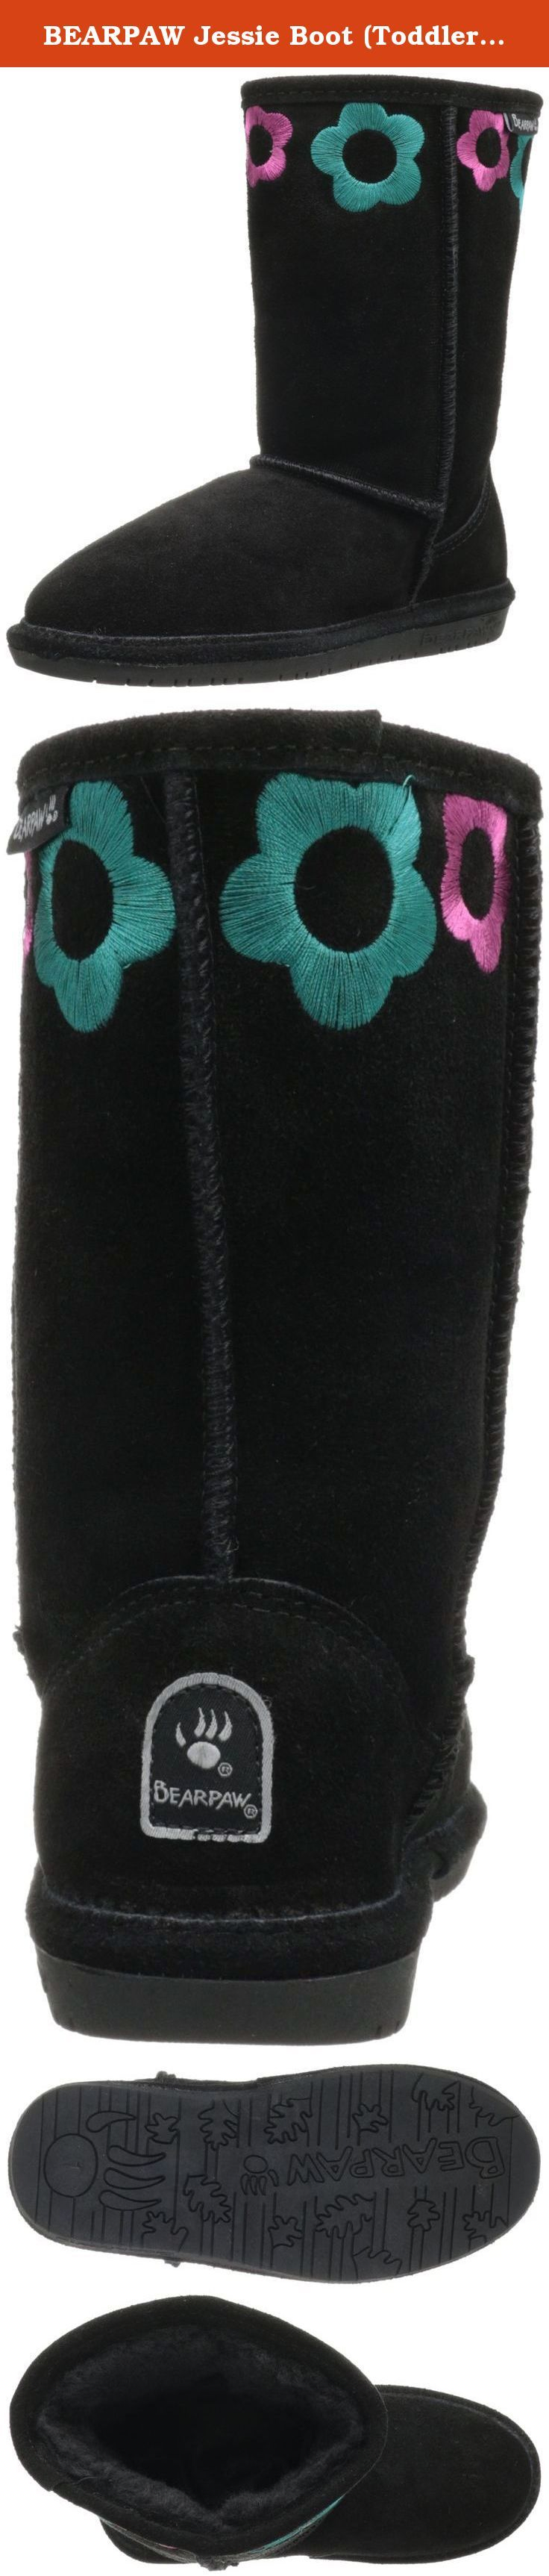 BEARPAW Jessie Boot (Toddler/Little Kid),Black,5 M US Toddler/Little Kid. You're only a kid once...Let those little personalities sparkle and shine through your kids Bearpaw winter boots. Keep them comfortable and warm this winter with these Bearpaw Jessie boots featuring embroidery detailing and a variety of color.